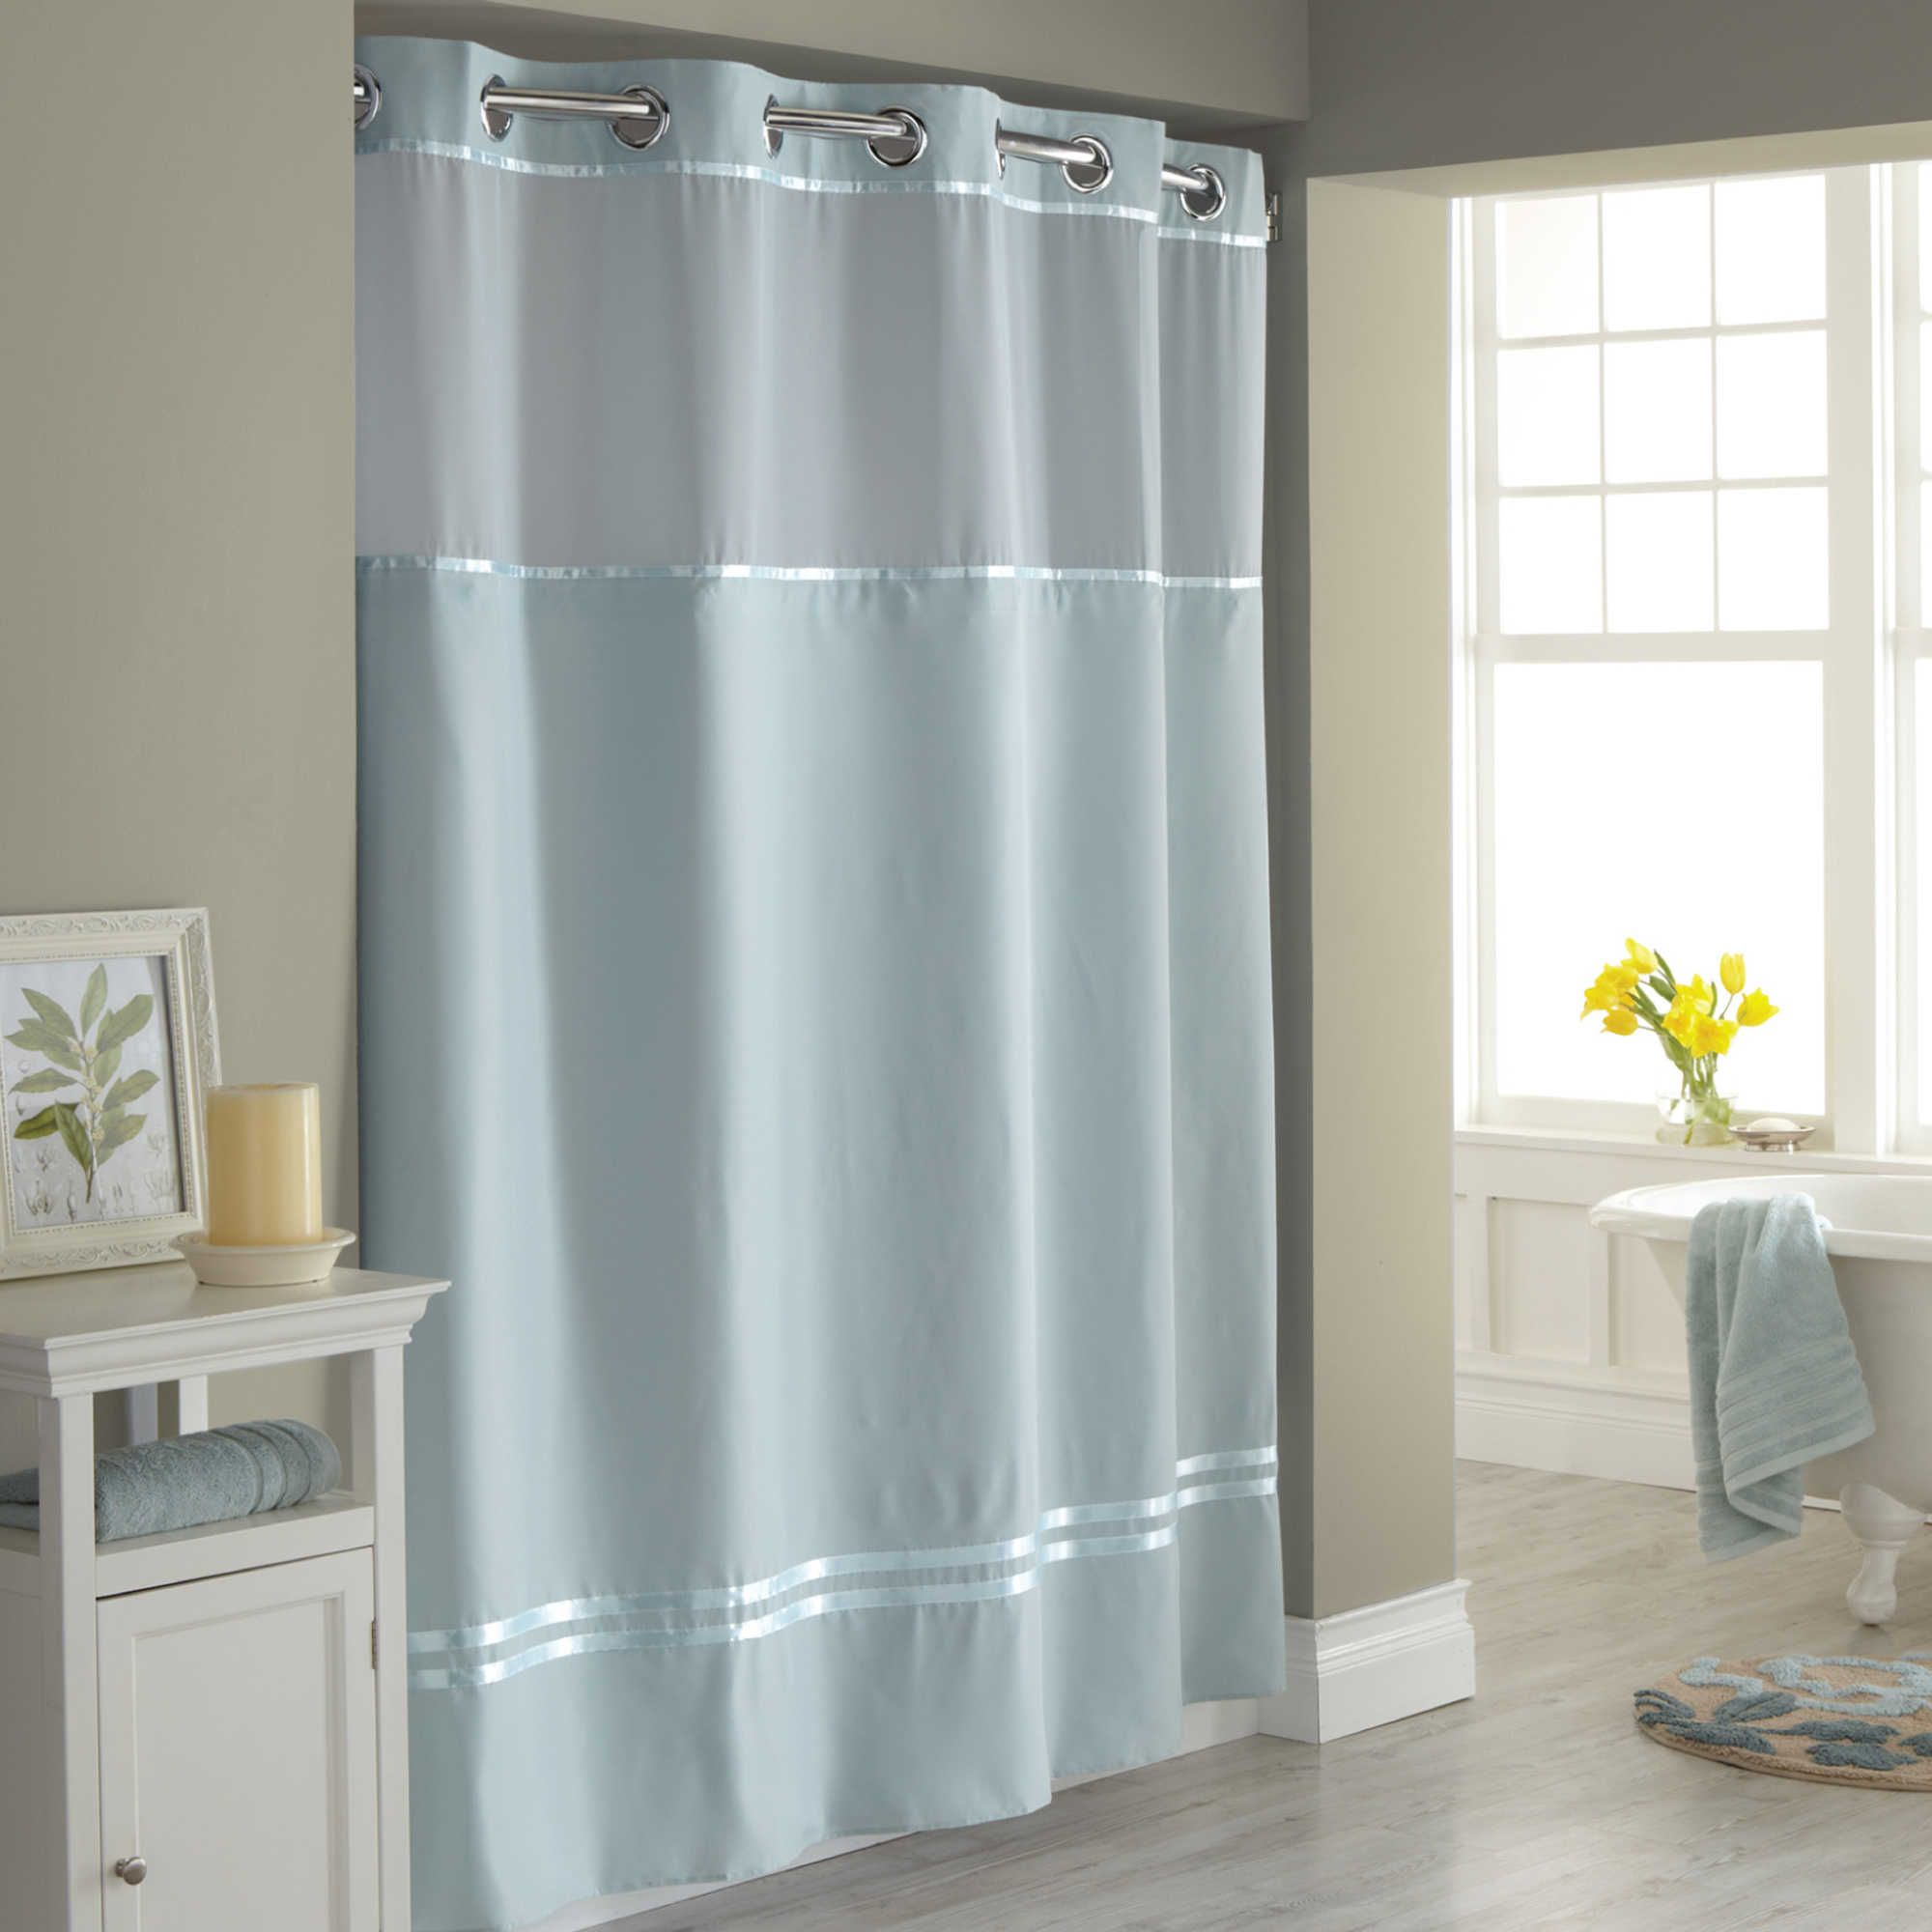 74 Shower Curtain Hookless Escape 71 Inch X 74 Inch Fabric Shower Curtain And